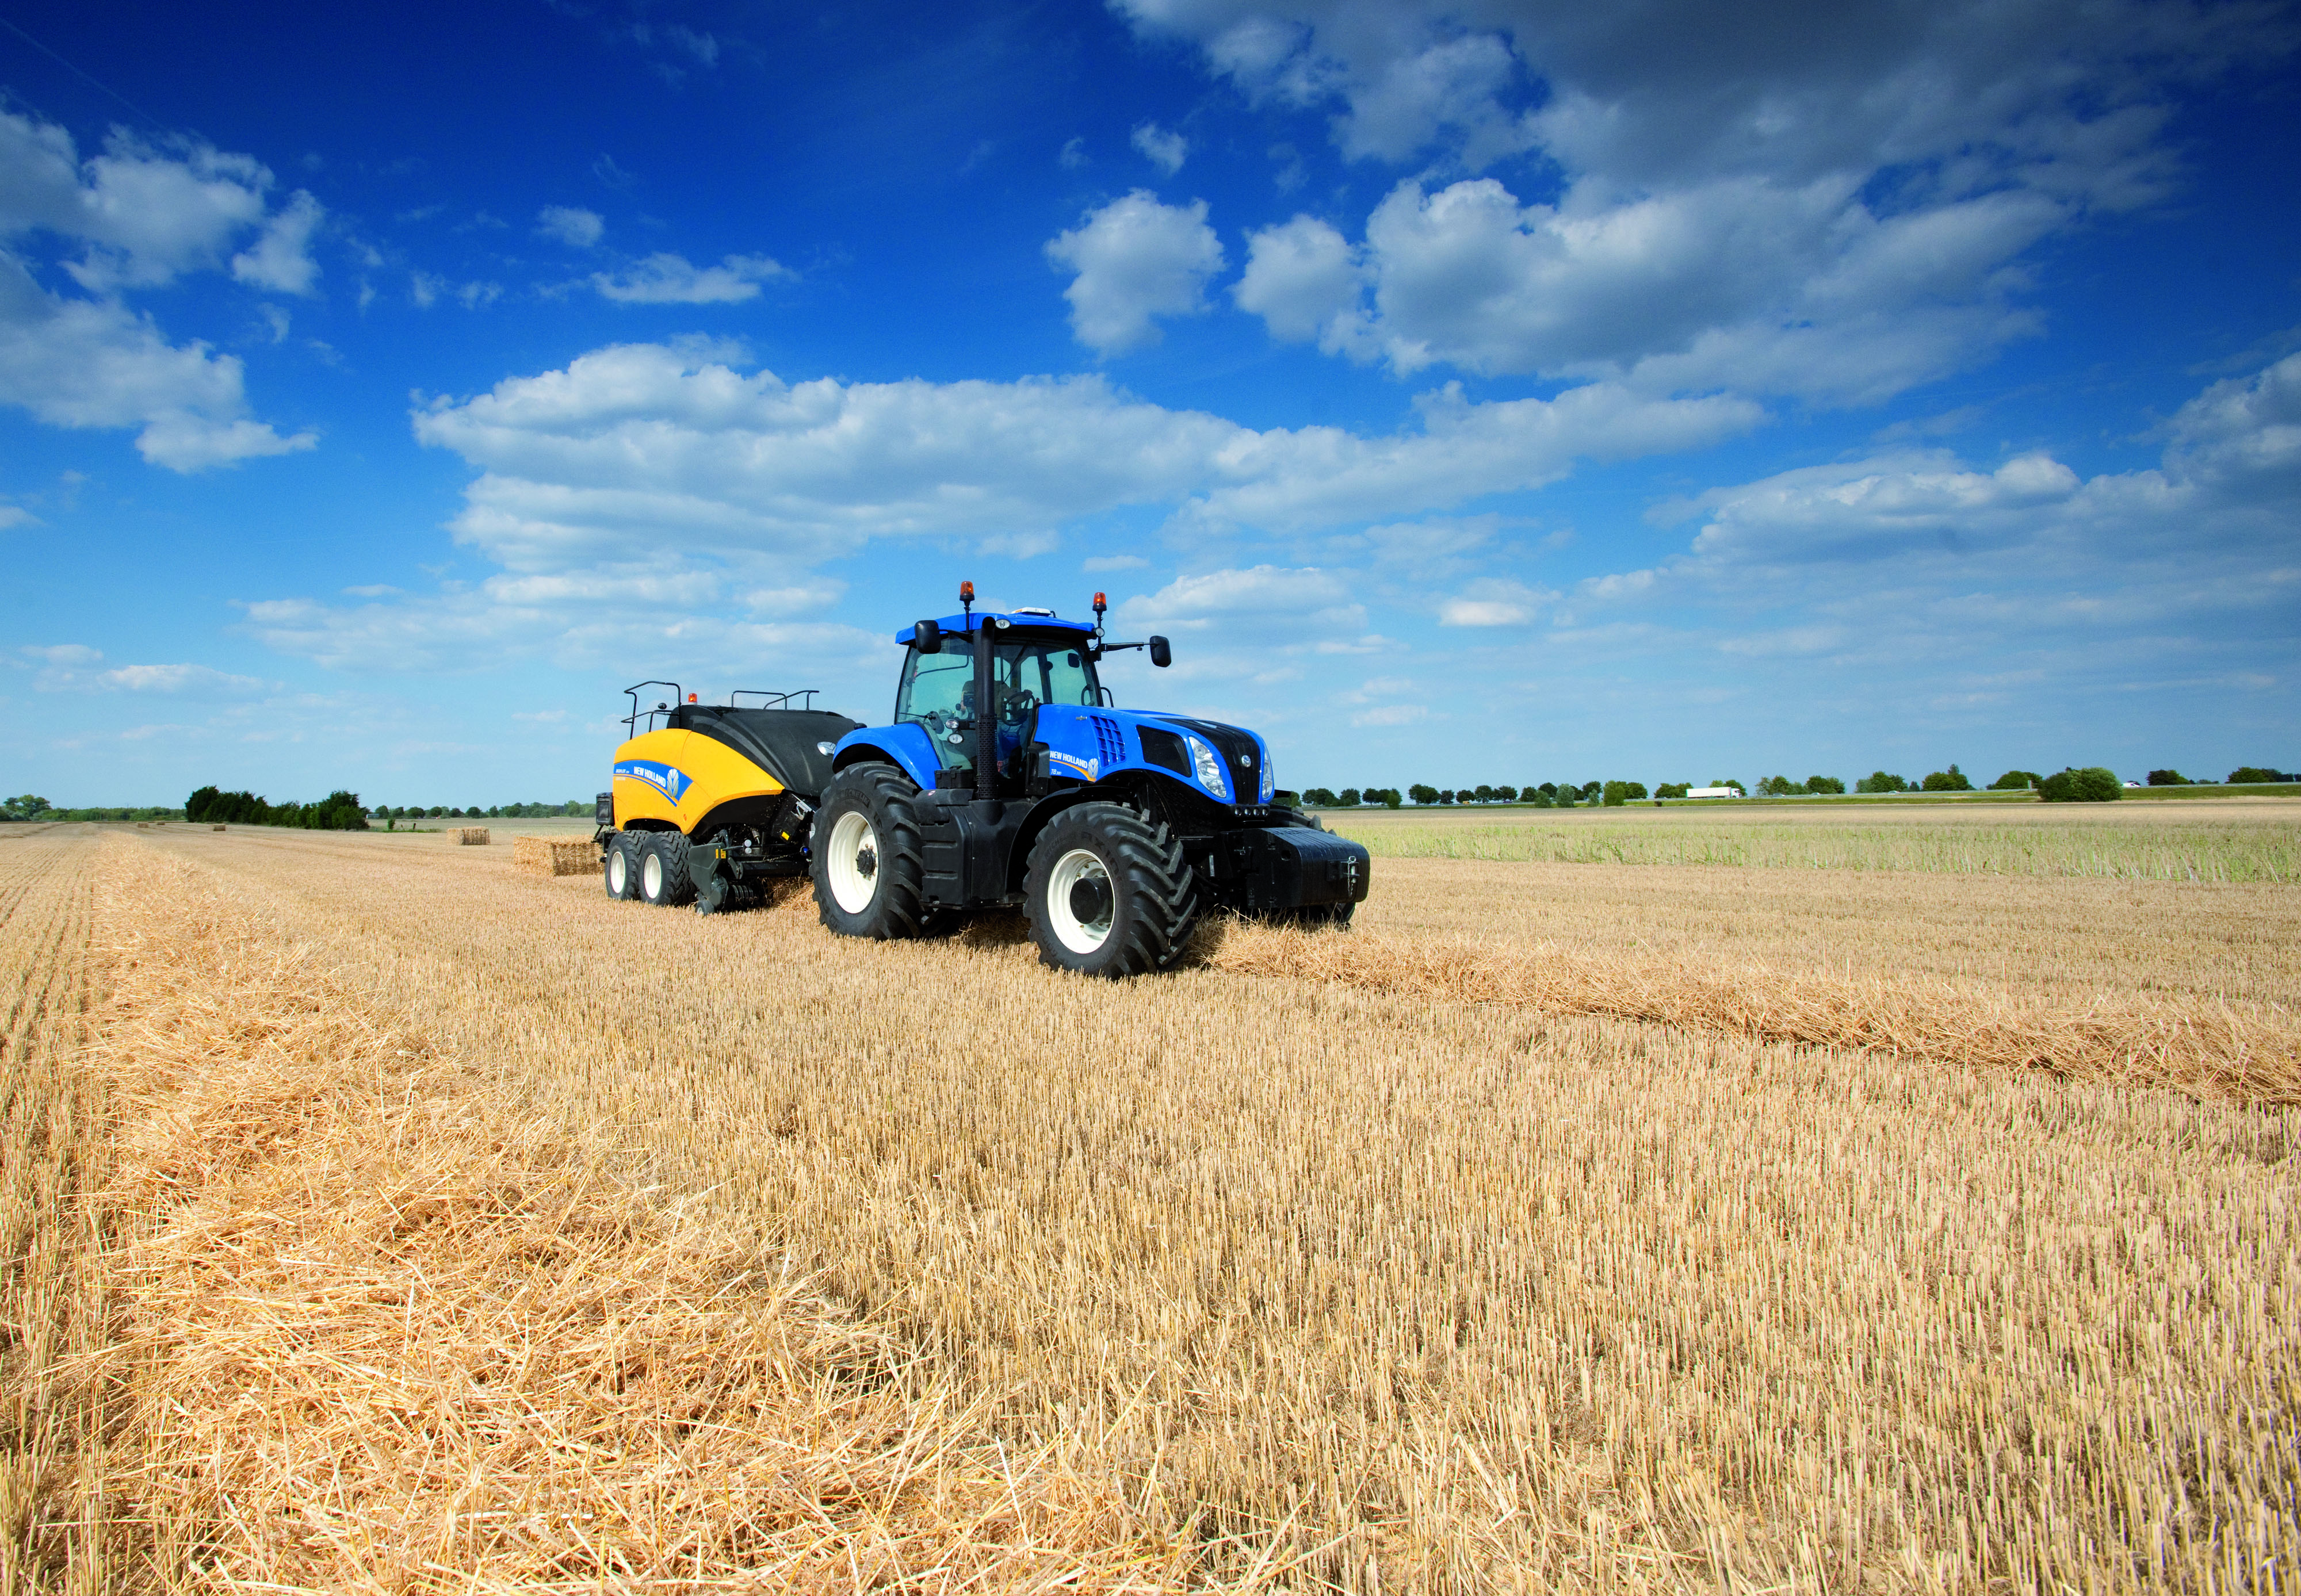 New Holland has introduced the next generation BigBaler - Climate Action